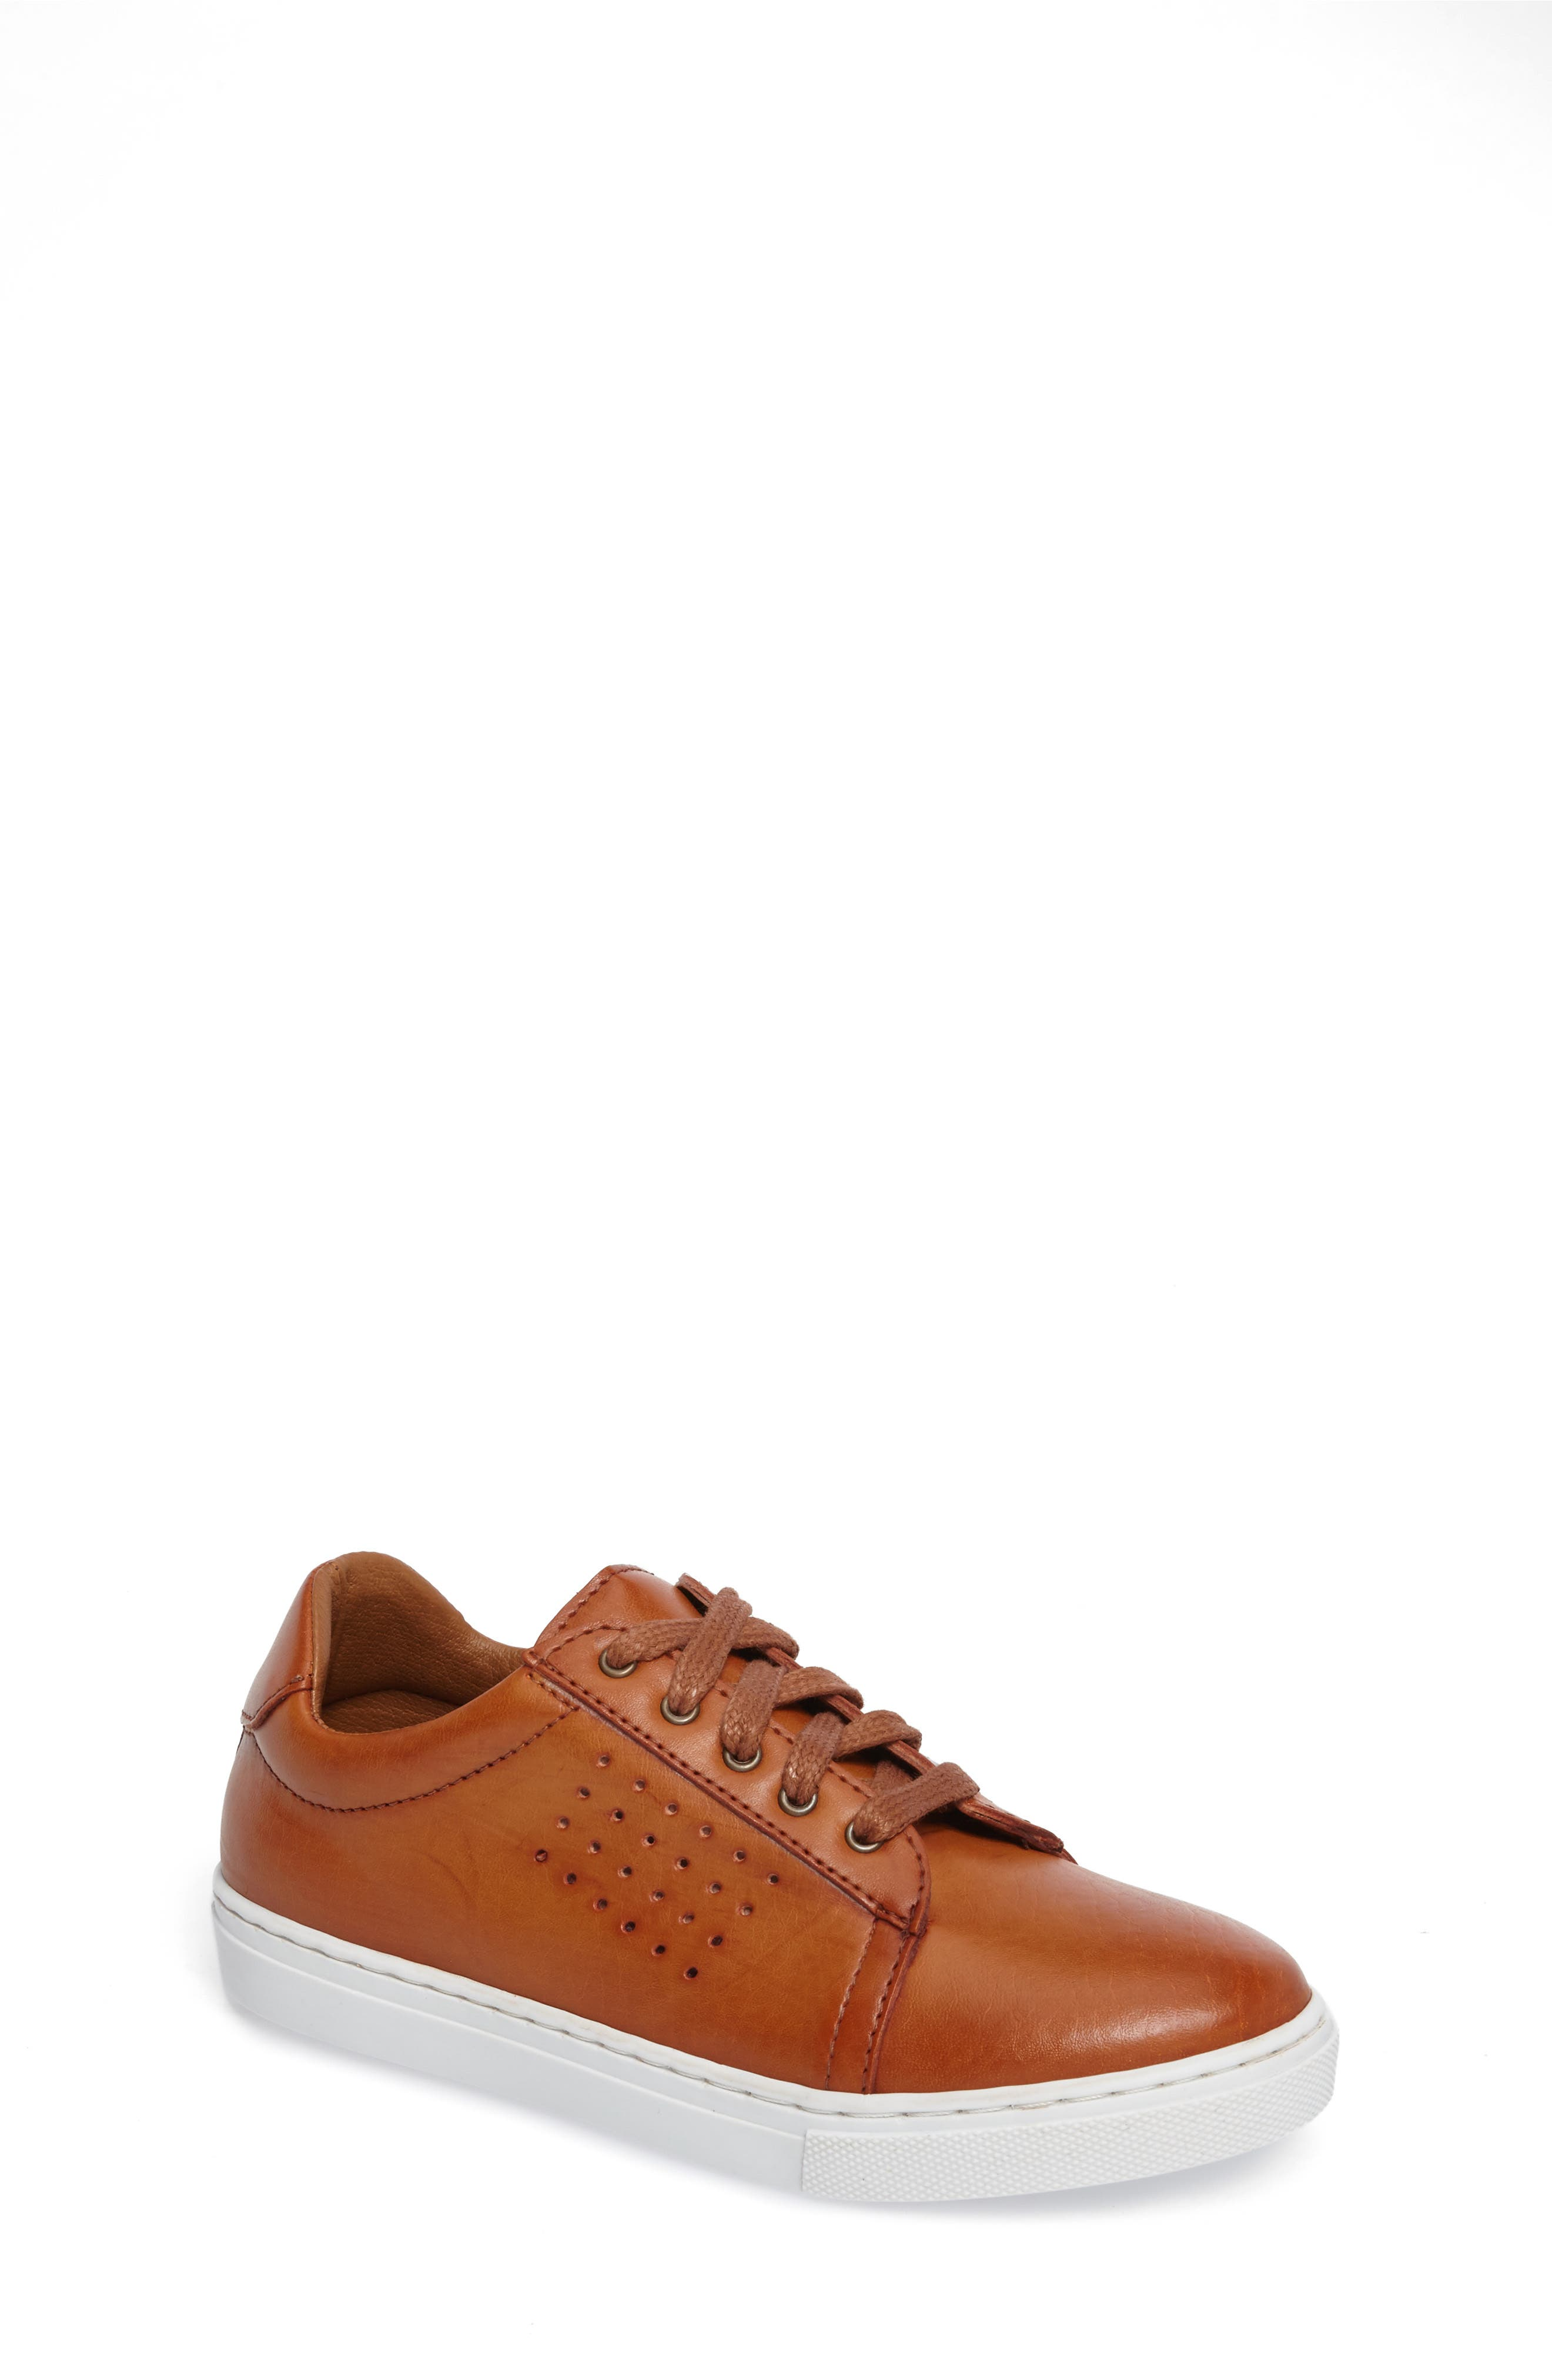 Grafte Perforated Sneaker,                             Main thumbnail 1, color,                             NATURALE